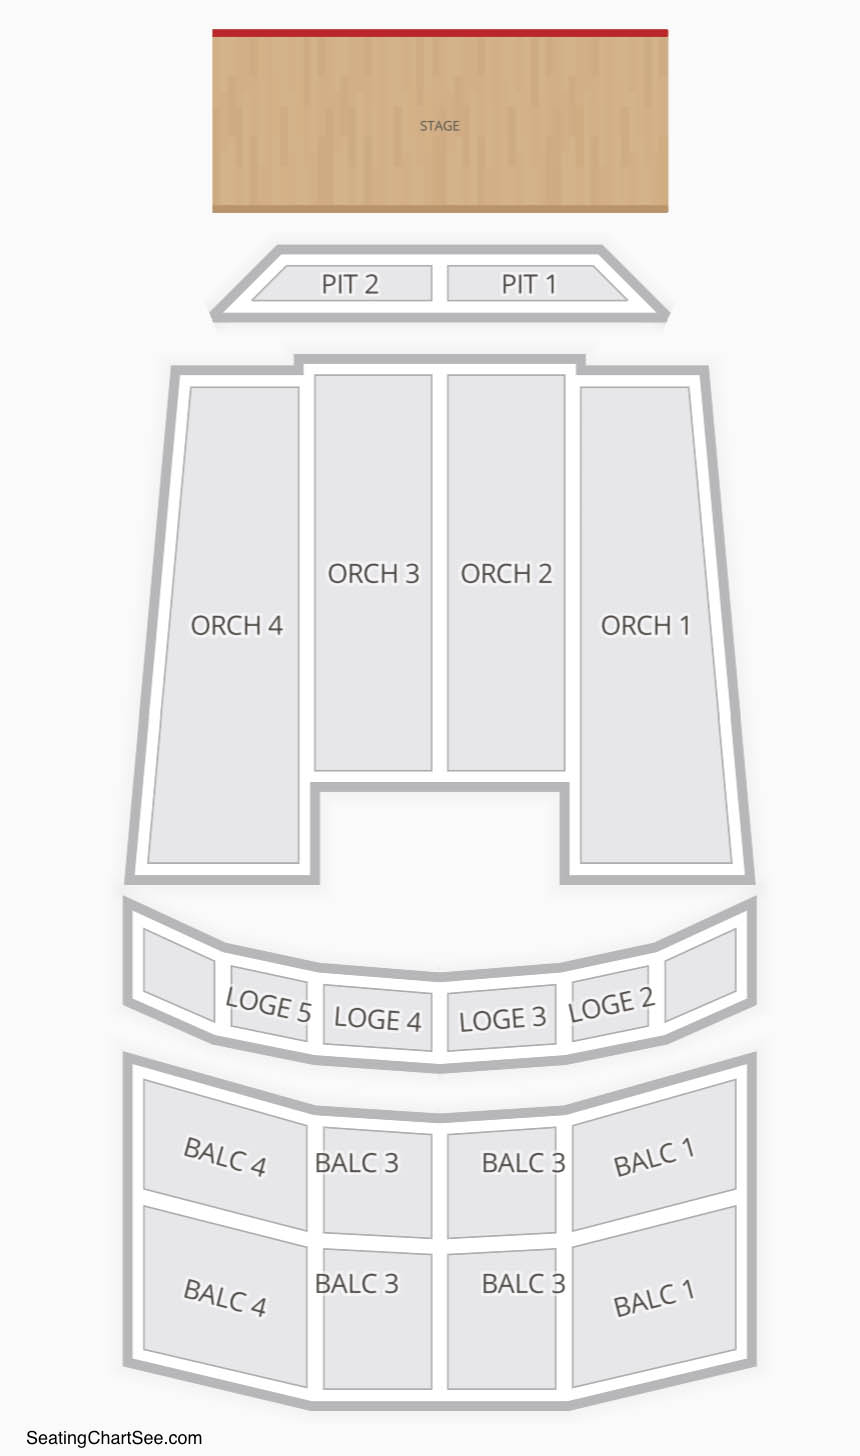 Louisville palace seating chart seating charts tickets